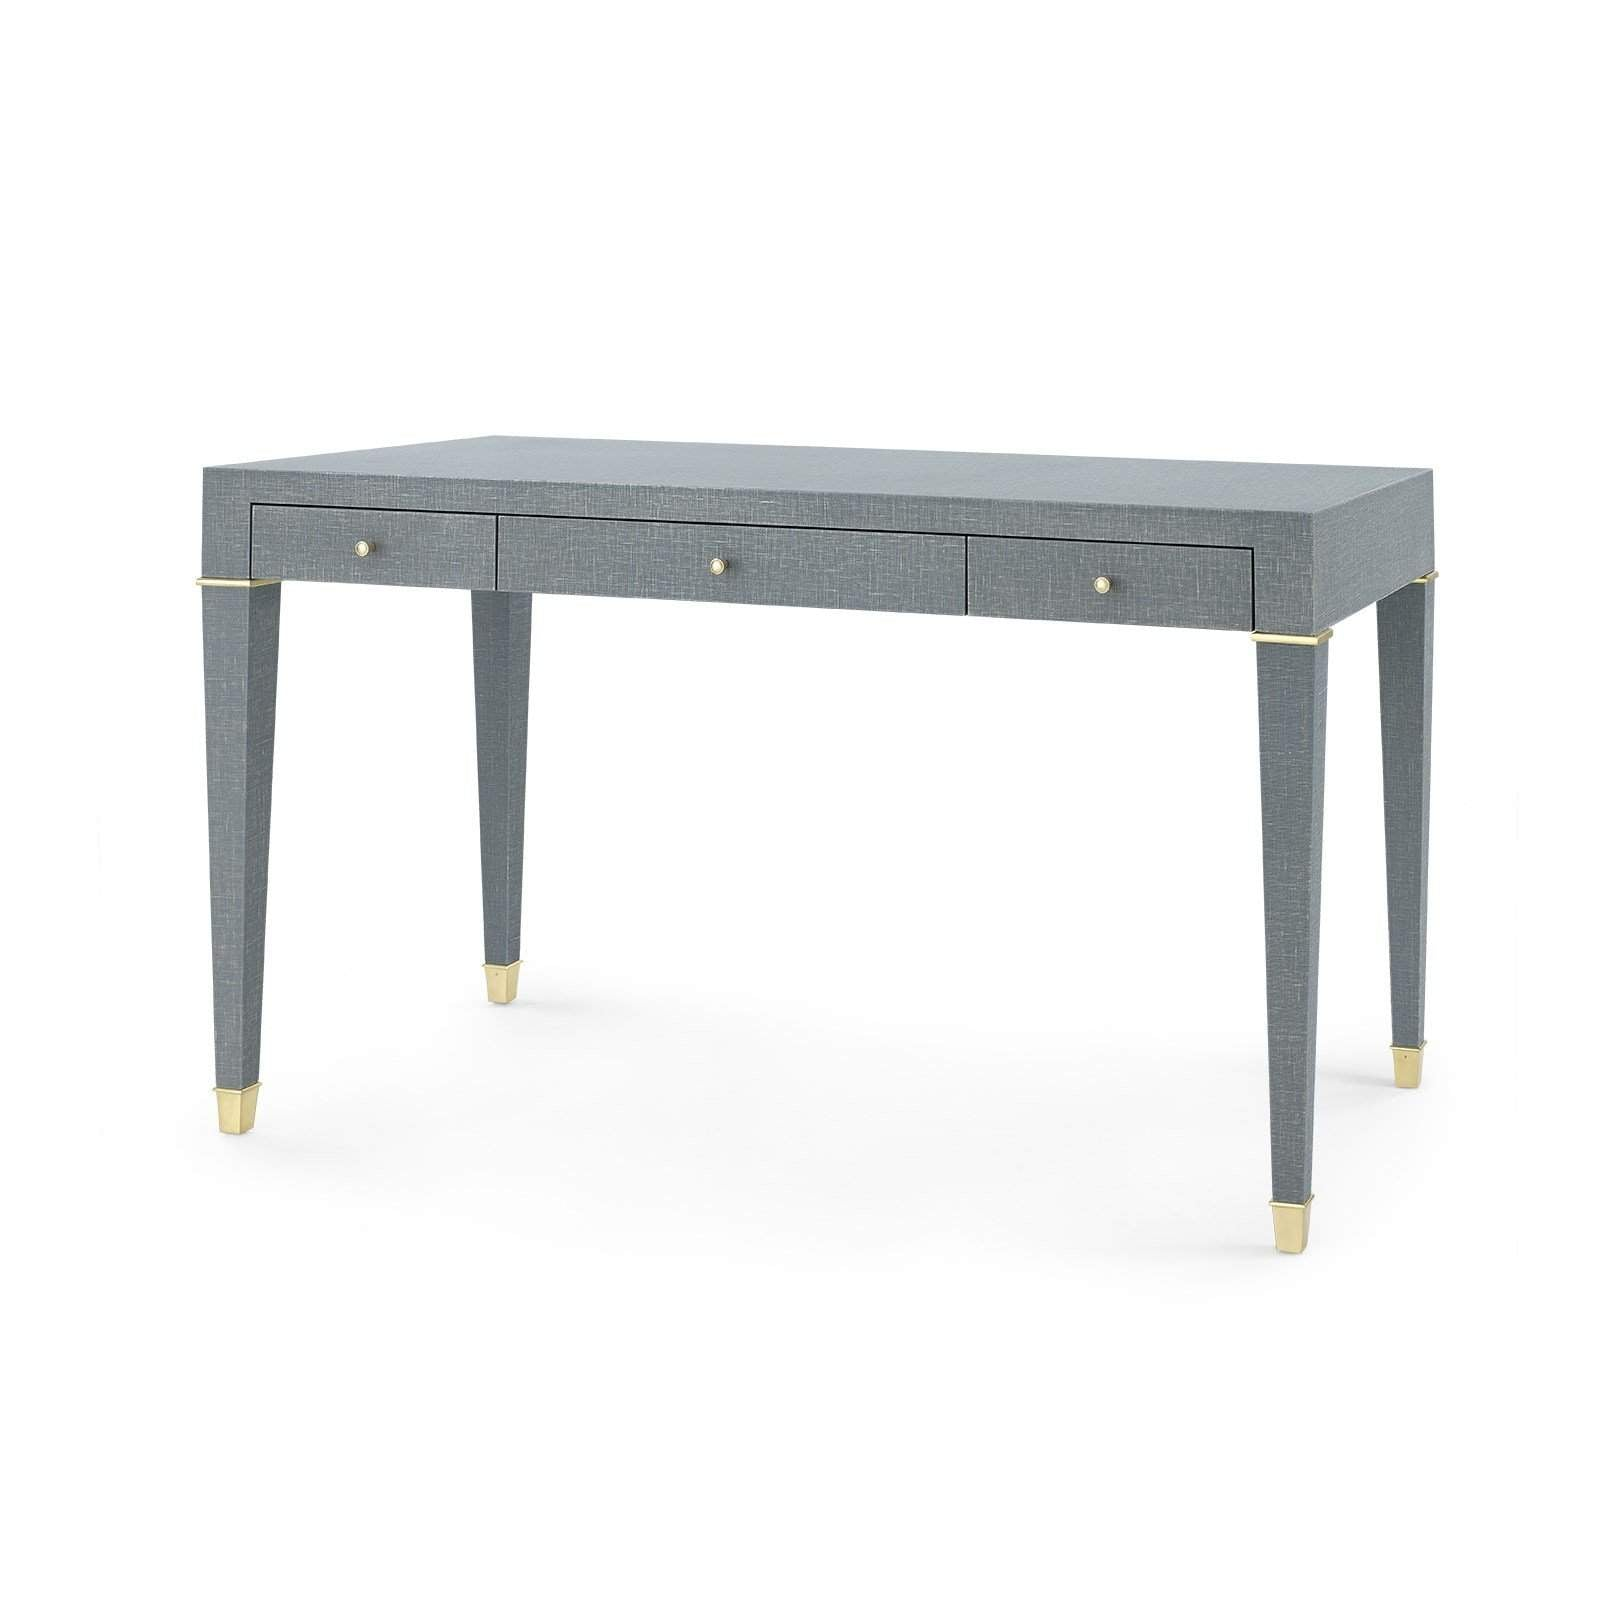 Bungalow 5 - CLAUDETTE DESK in GRAY